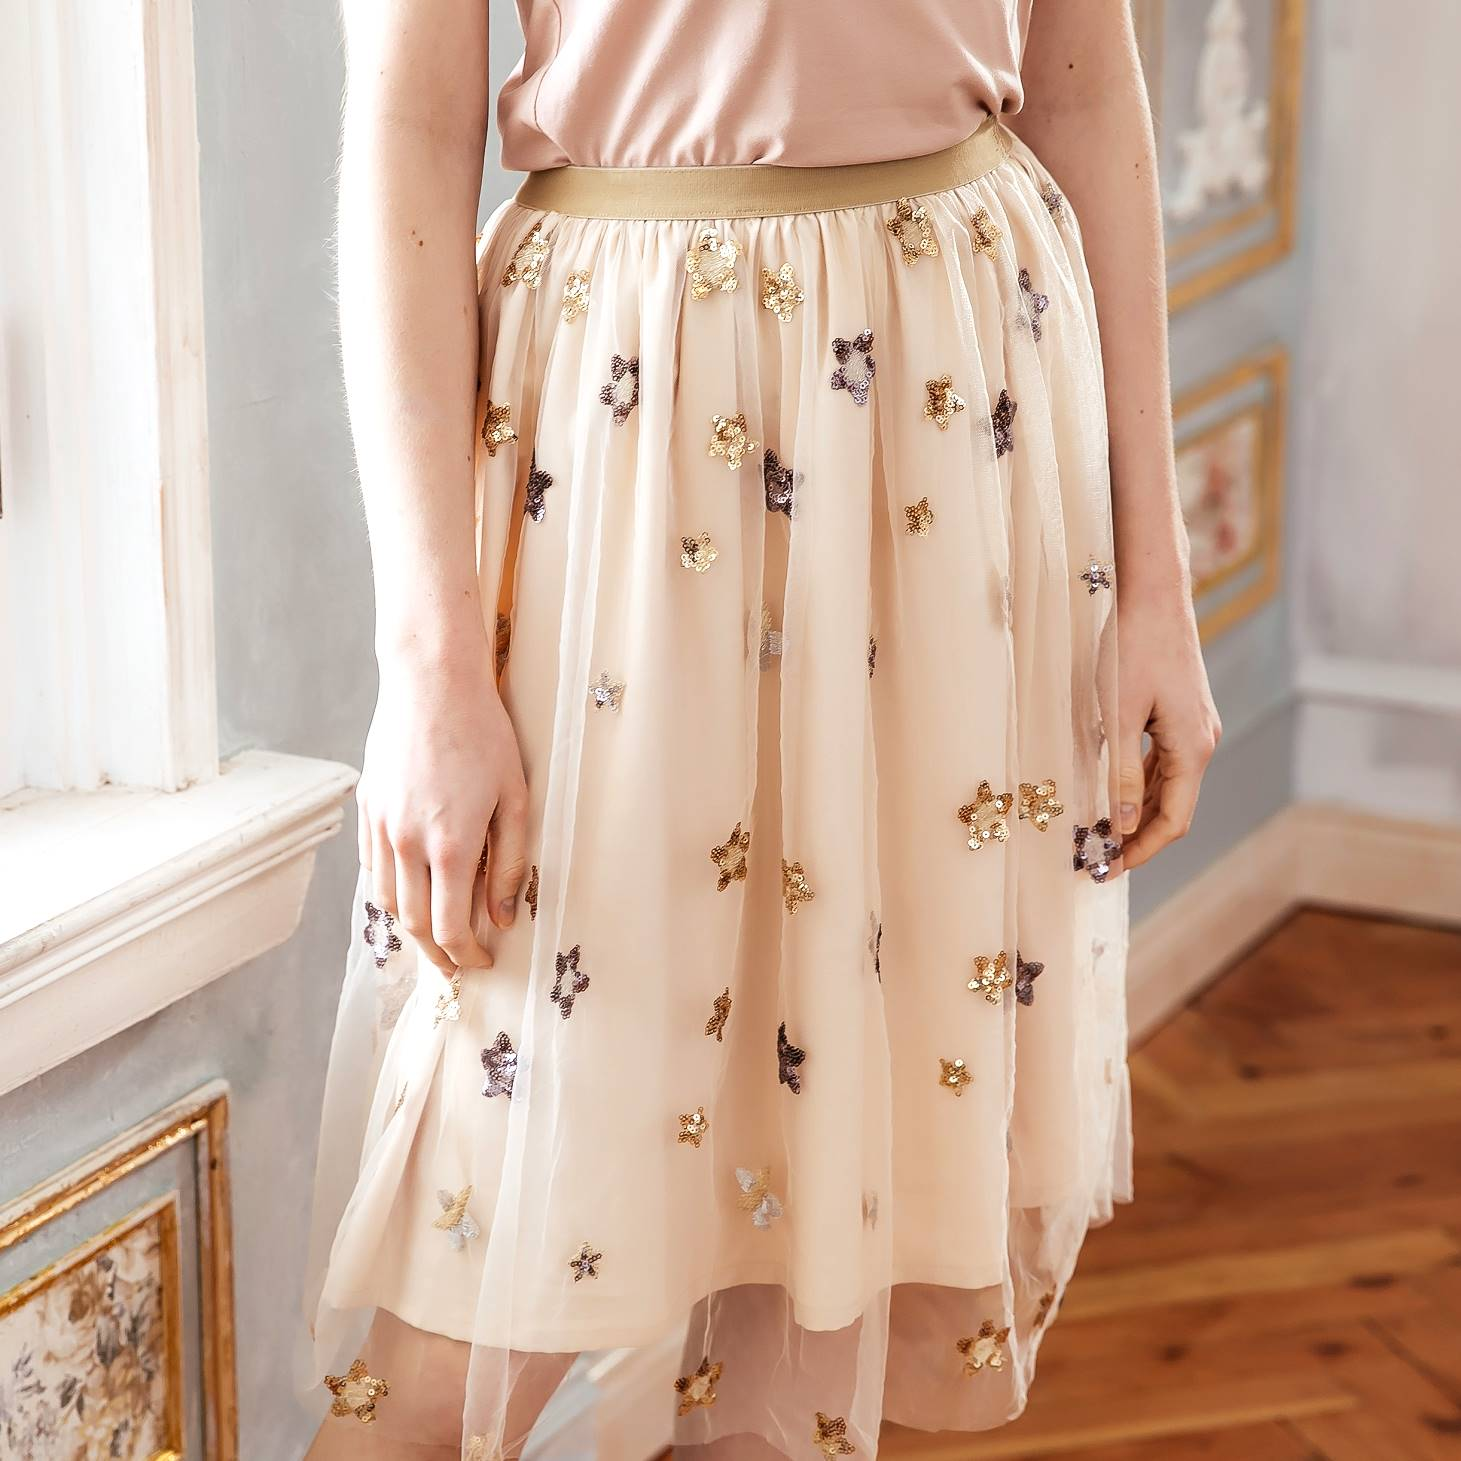 Woman skirt- Elegant embroidered skirts